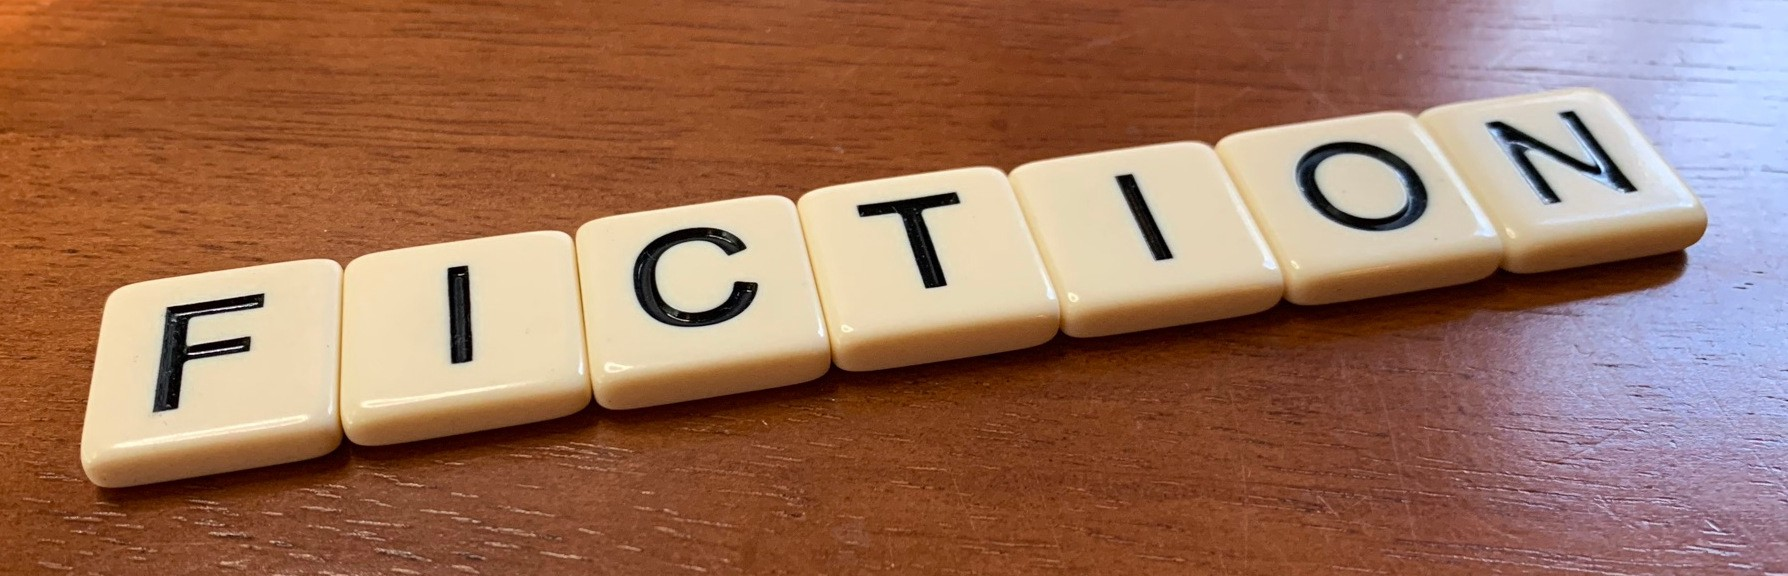 "Letter tiles spelling out ""Fiction"" on a wooden desktop"